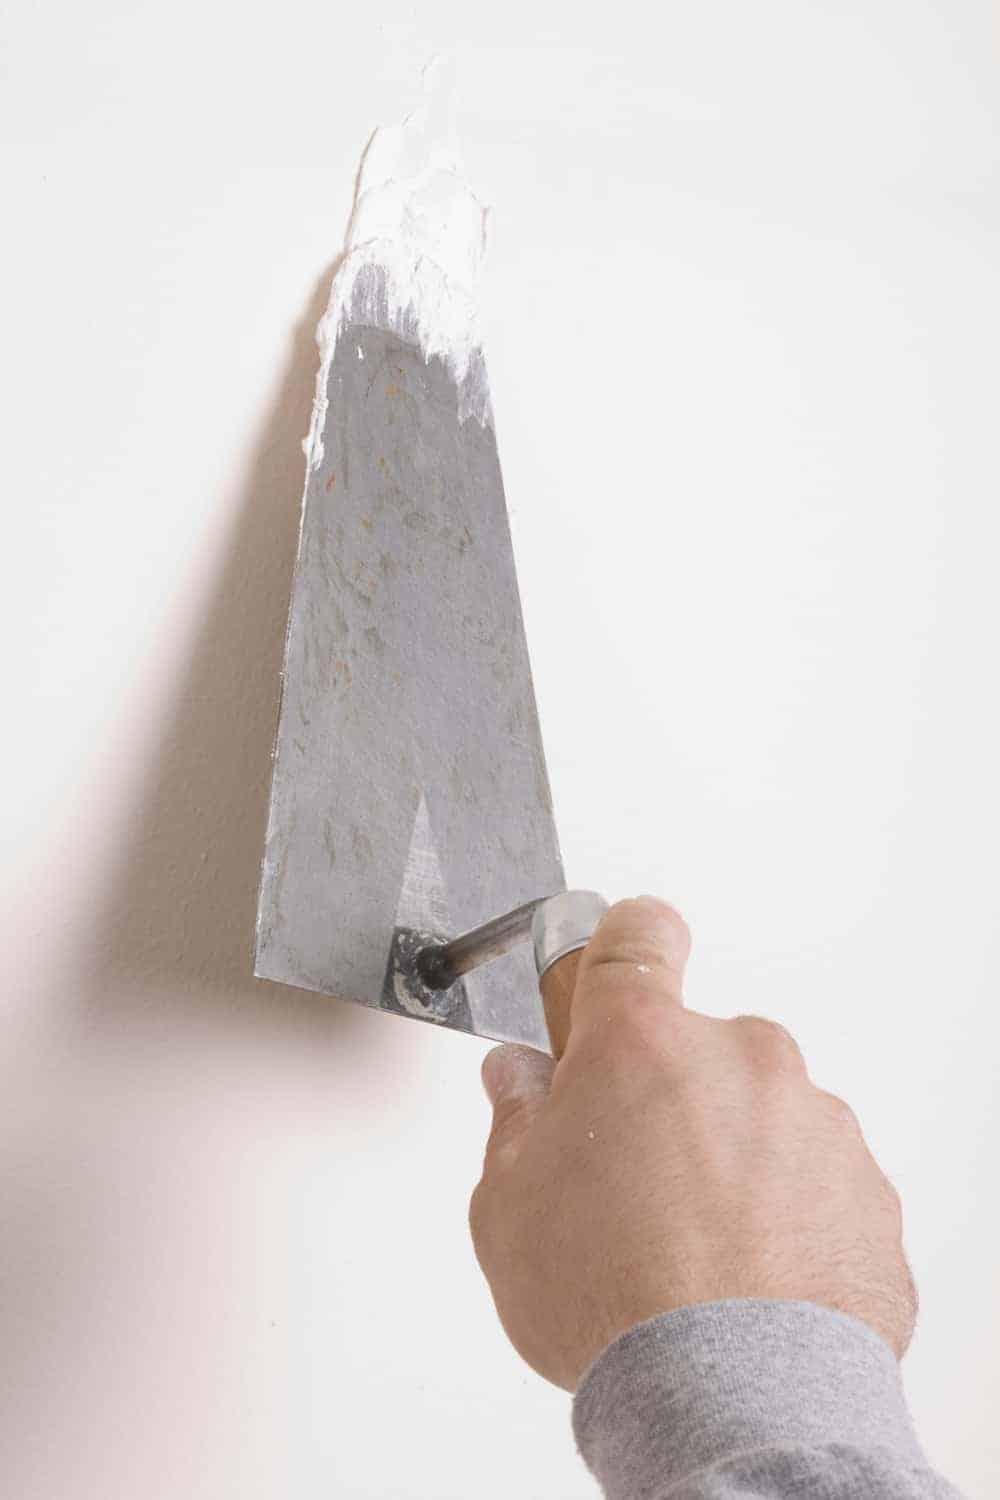 Top 5 DIY Skills You Should Know - How to Patch a Hole in the Wall